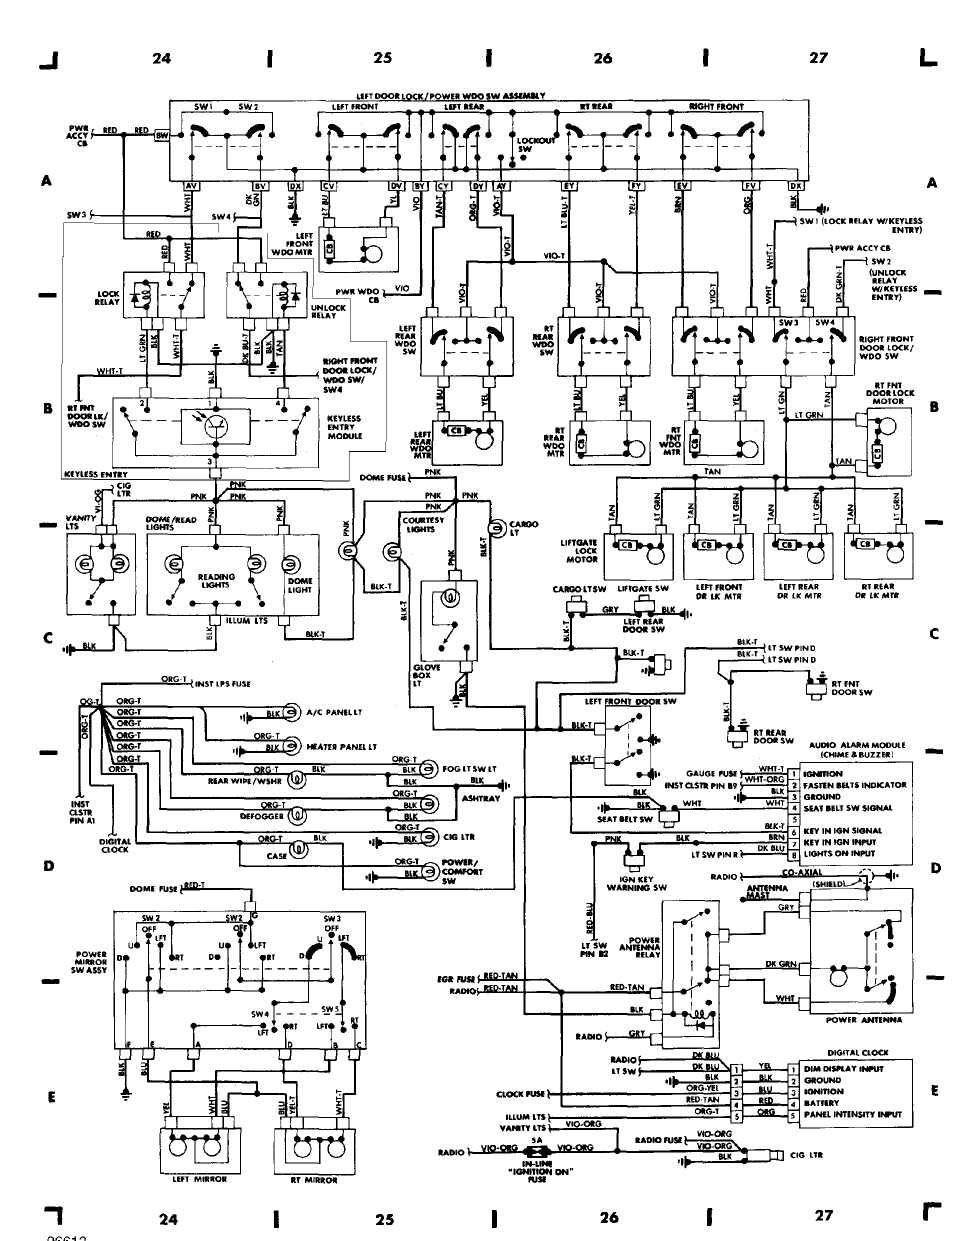 wiring_diagrams_html_61f5e0ad wiring diagrams 1984 1991 jeep cherokee (xj) jeep 1990 jeep wrangler fuse box diagram at gsmportal.co